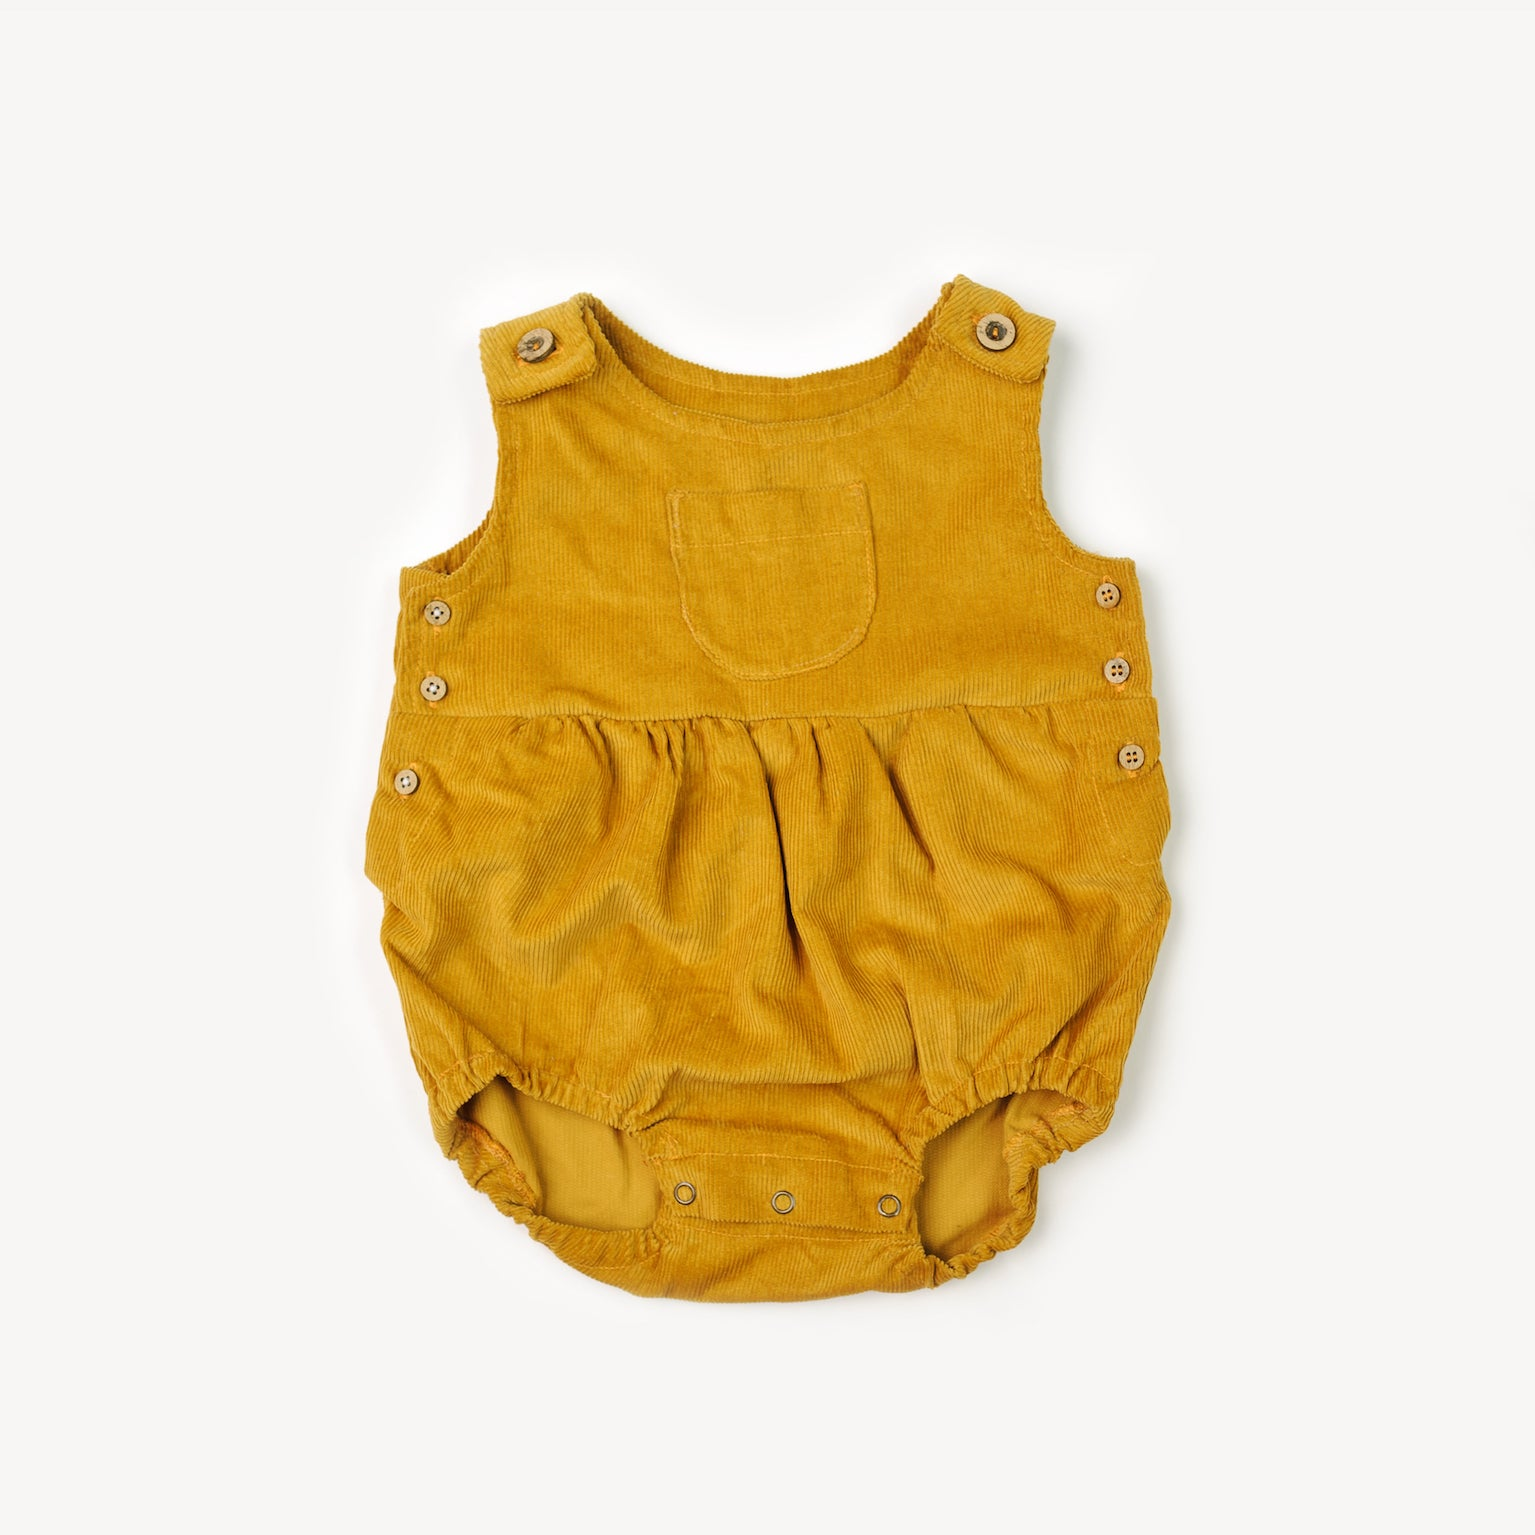 66d7eafc68 Fin and Vince corduroy cotton baby romper in mustard yellow